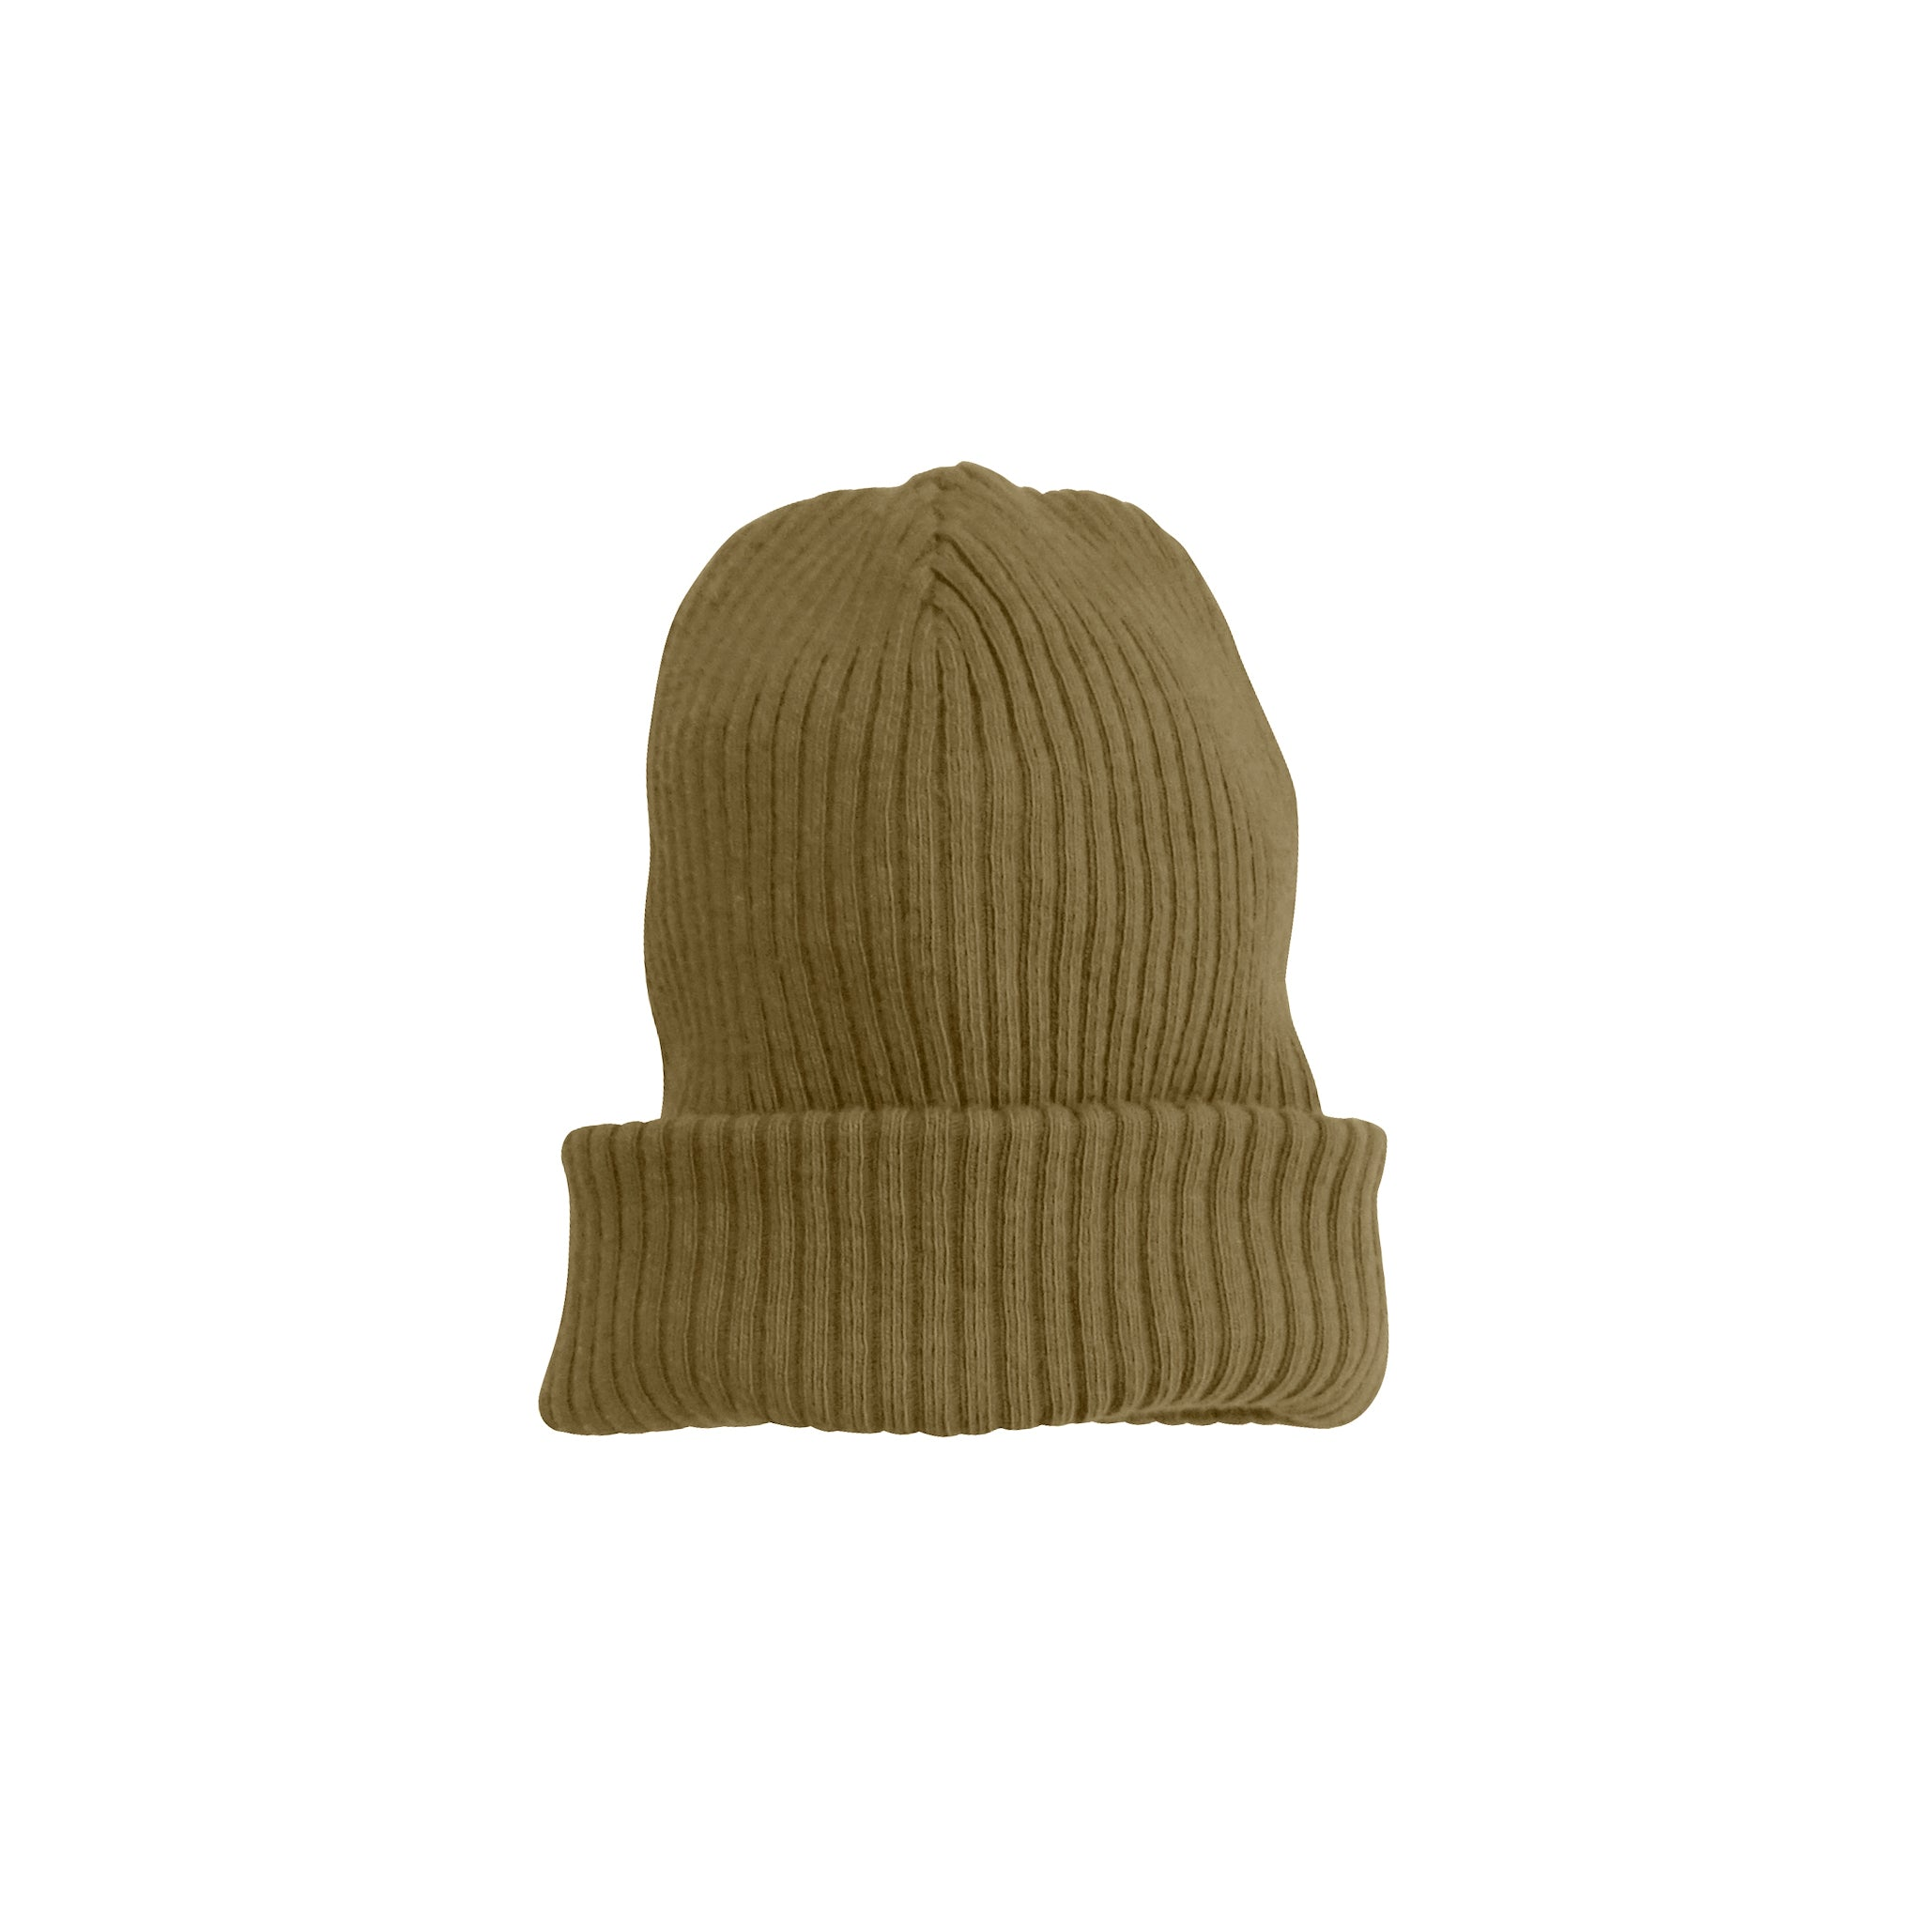 SALE Nico Nico Woods Kid's Beanie Root Brown | BIEN BIEN